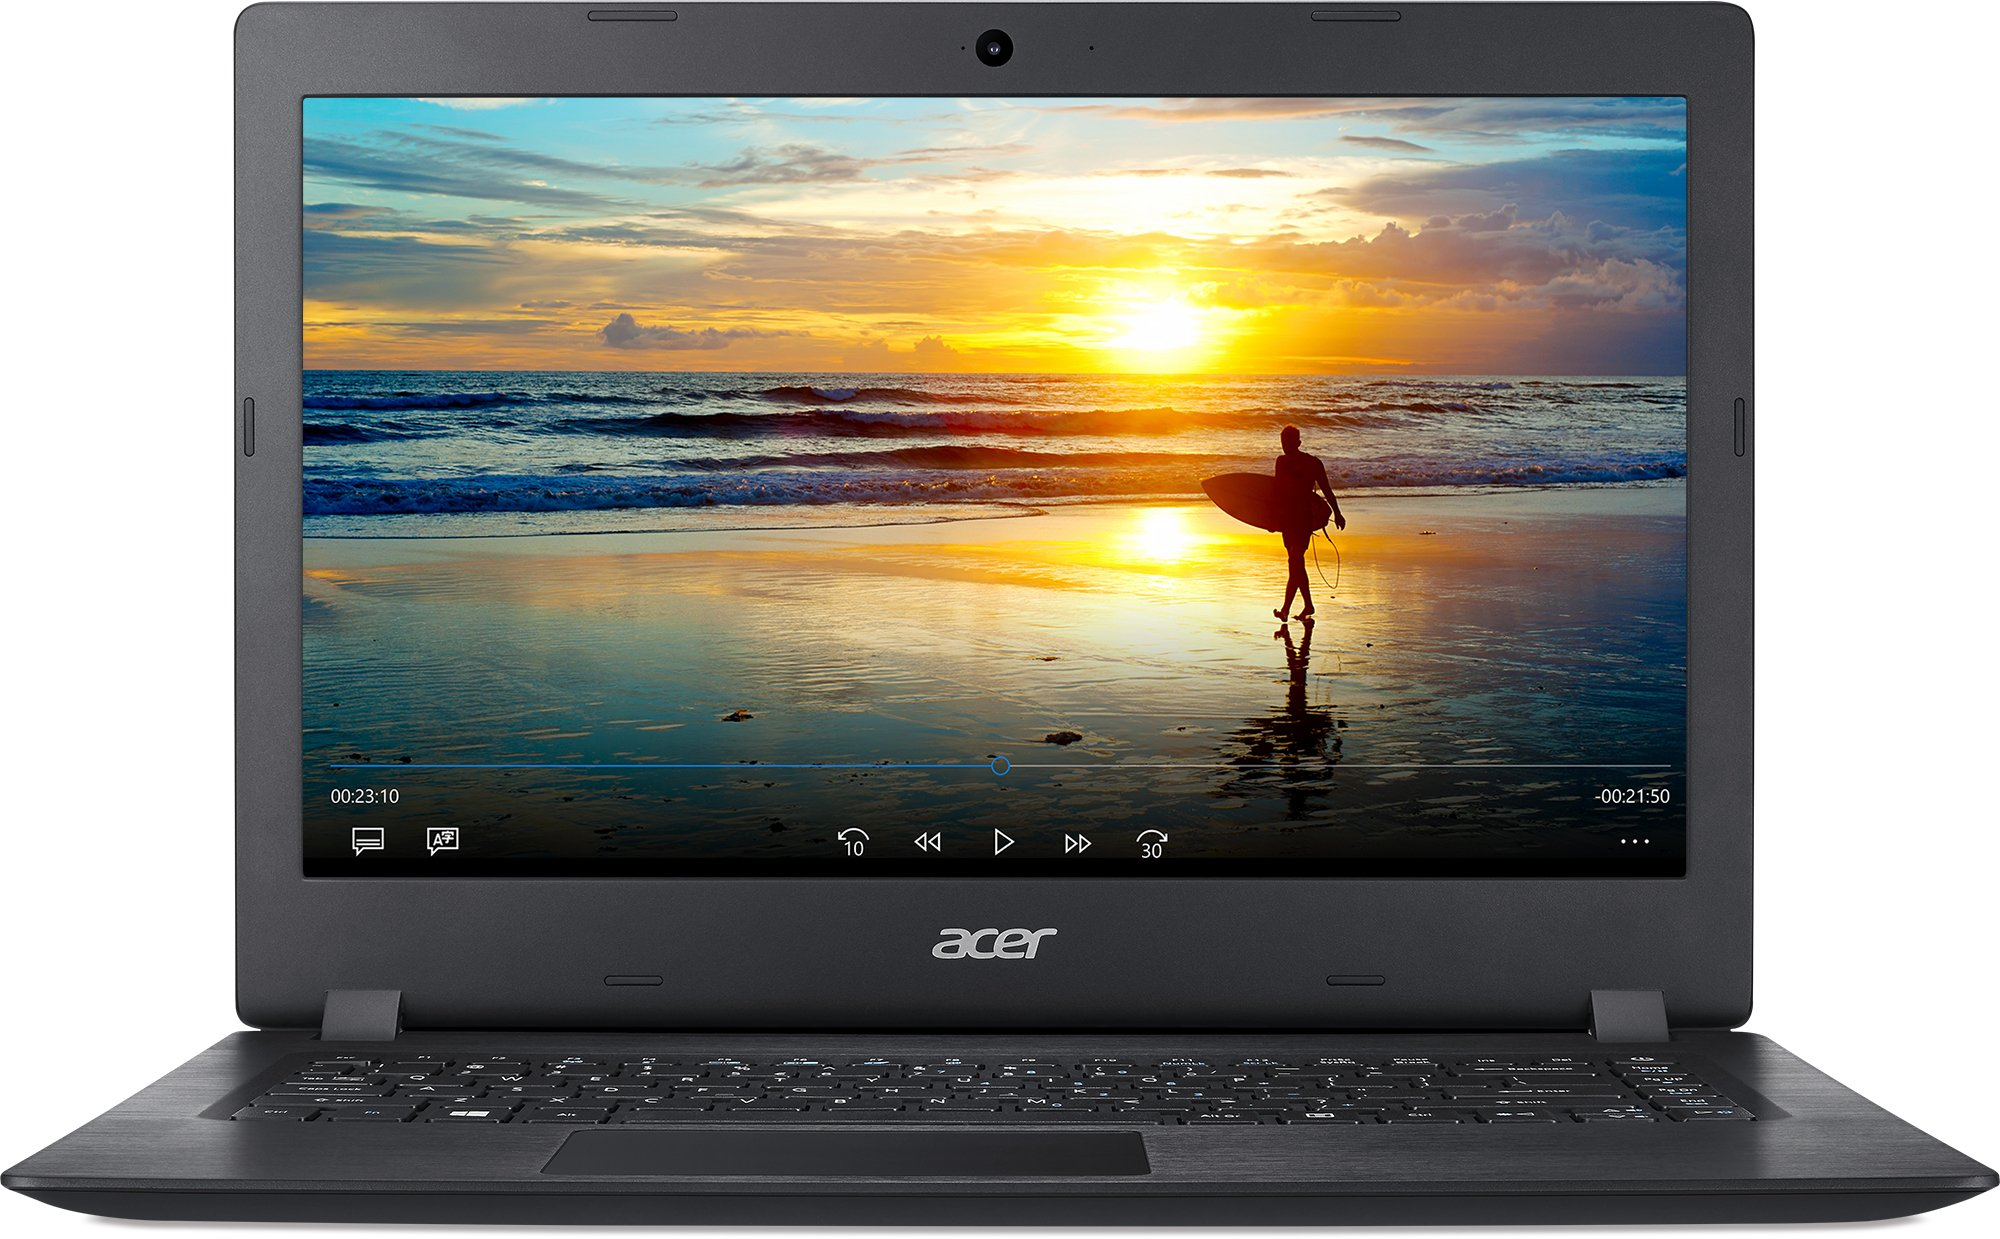 Acer Aspire 1, 14'' Full HD, Intel Celeron N3450, 4GB RAM, 32GB Storage, Windows 10 Home, A114-31-C4HH by Acer